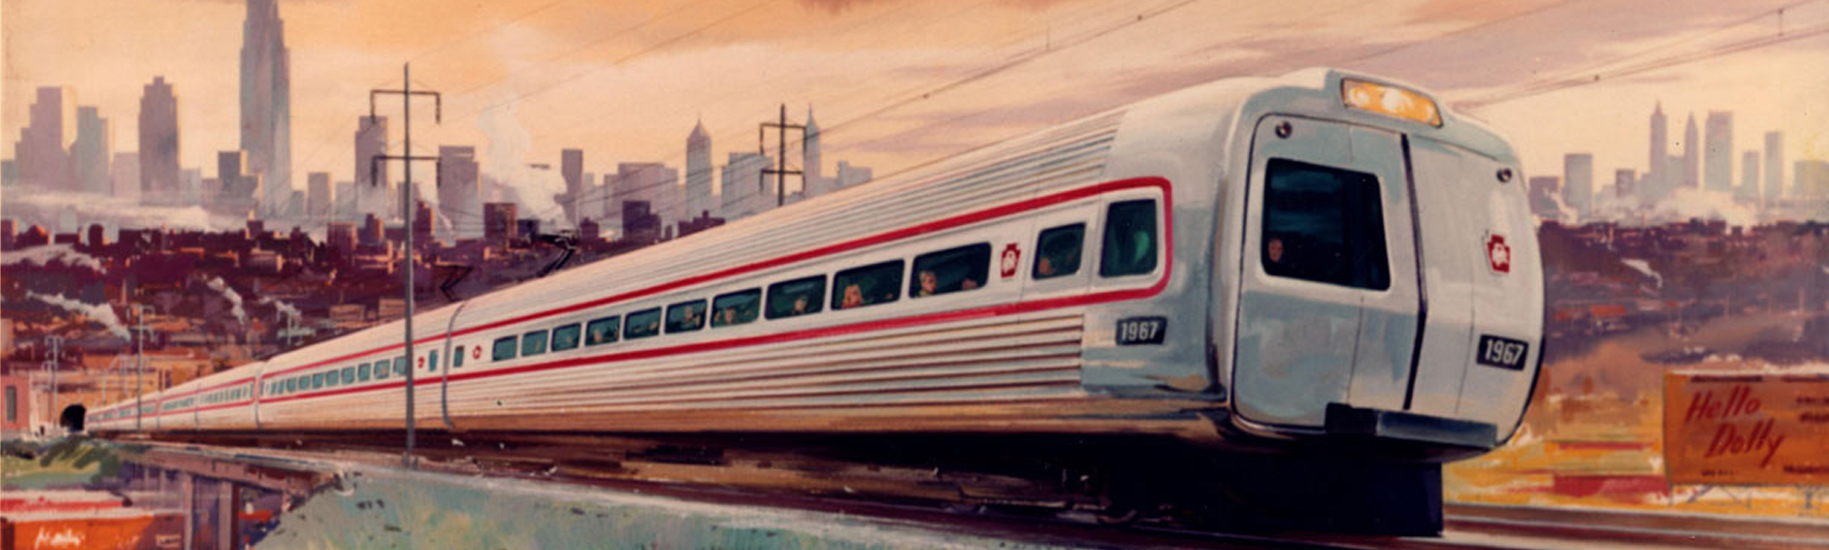 Metroliner train illustration